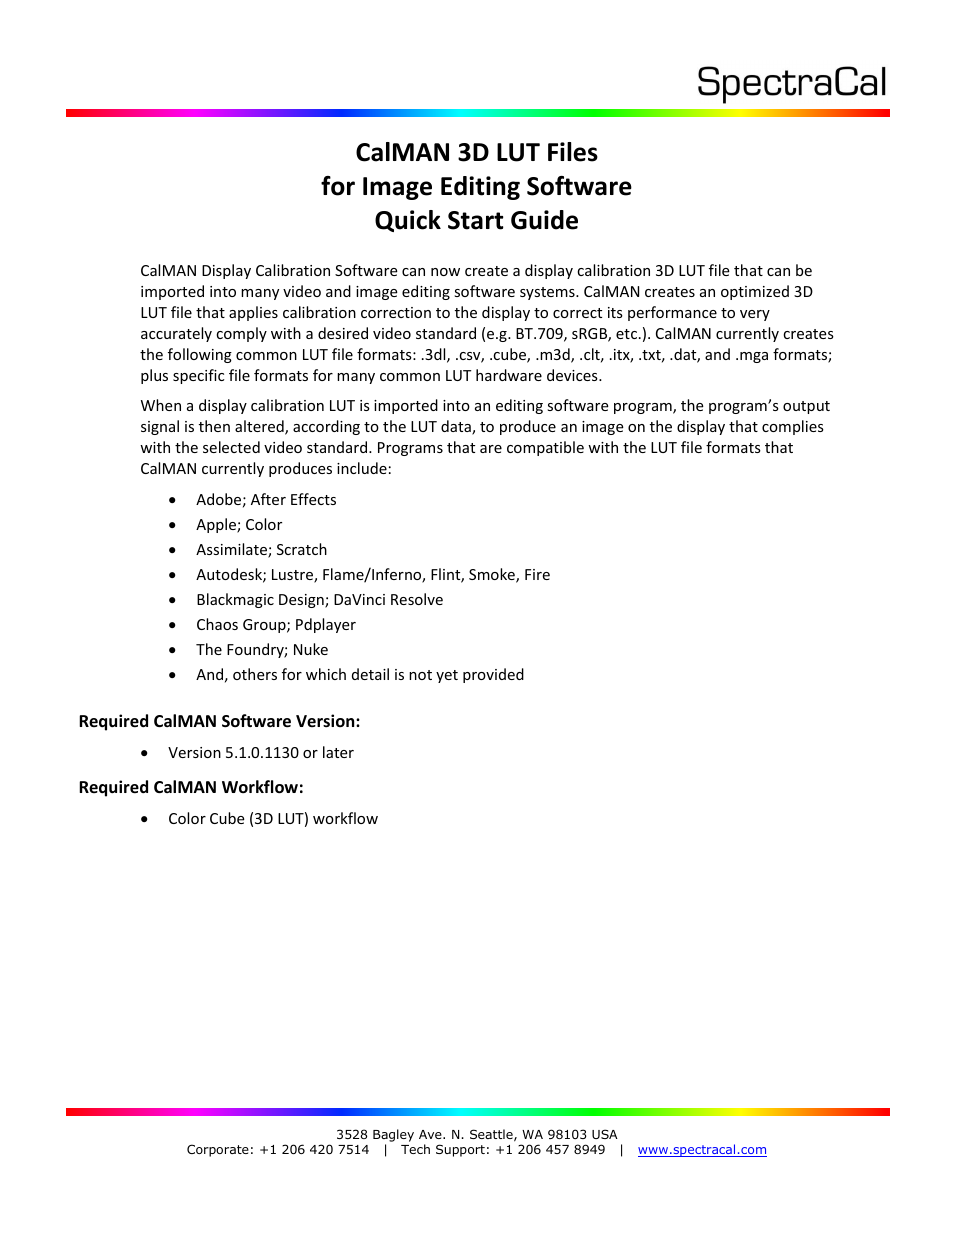 SpectraCal CalMAN 3D LUT Software Files User Manual | 7 pages